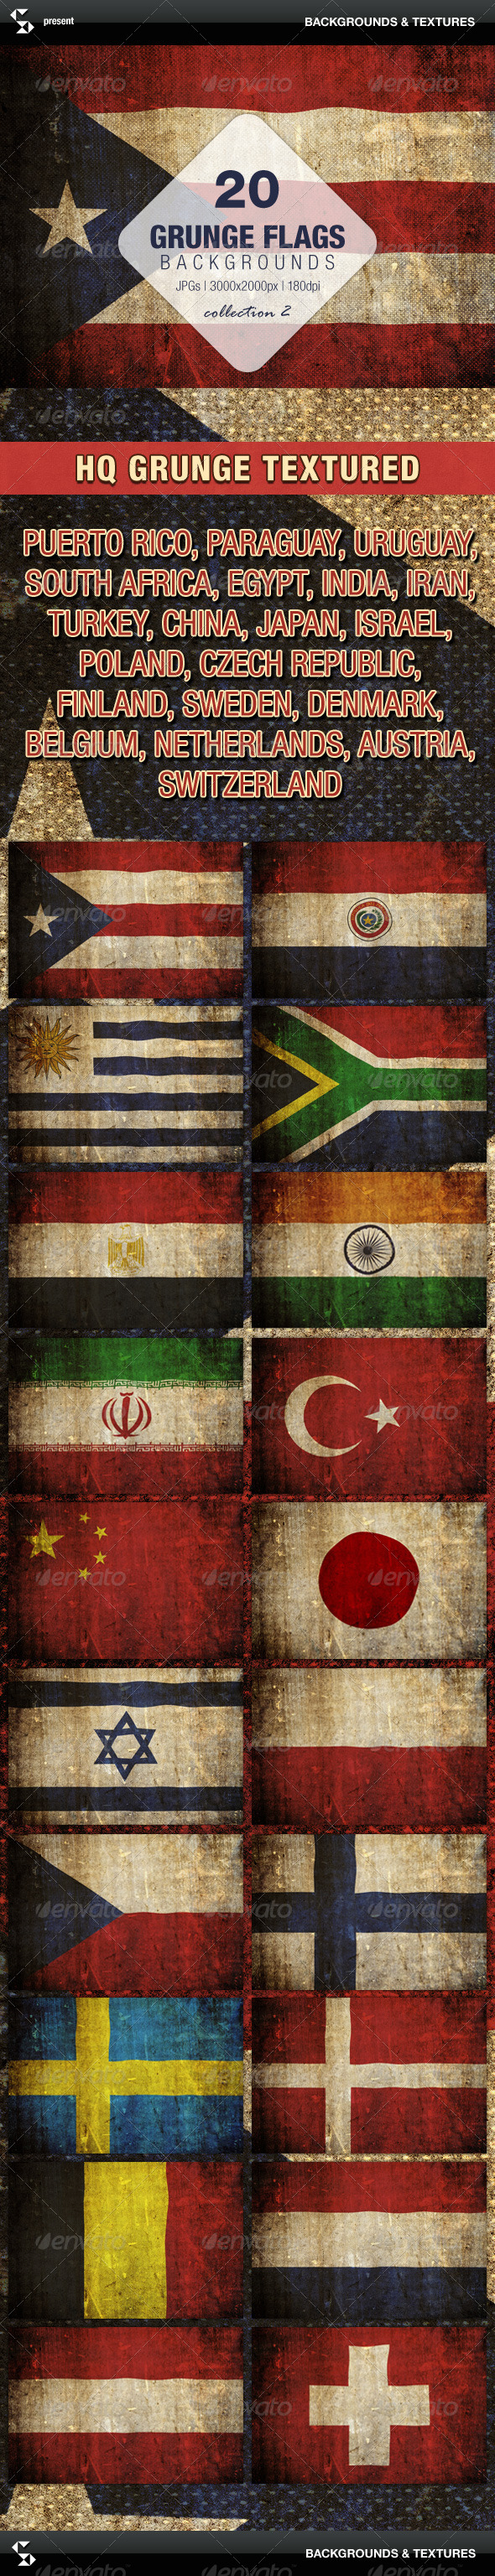 Grunge Flags - 20 Countries (Collection 2) - Urban Backgrounds